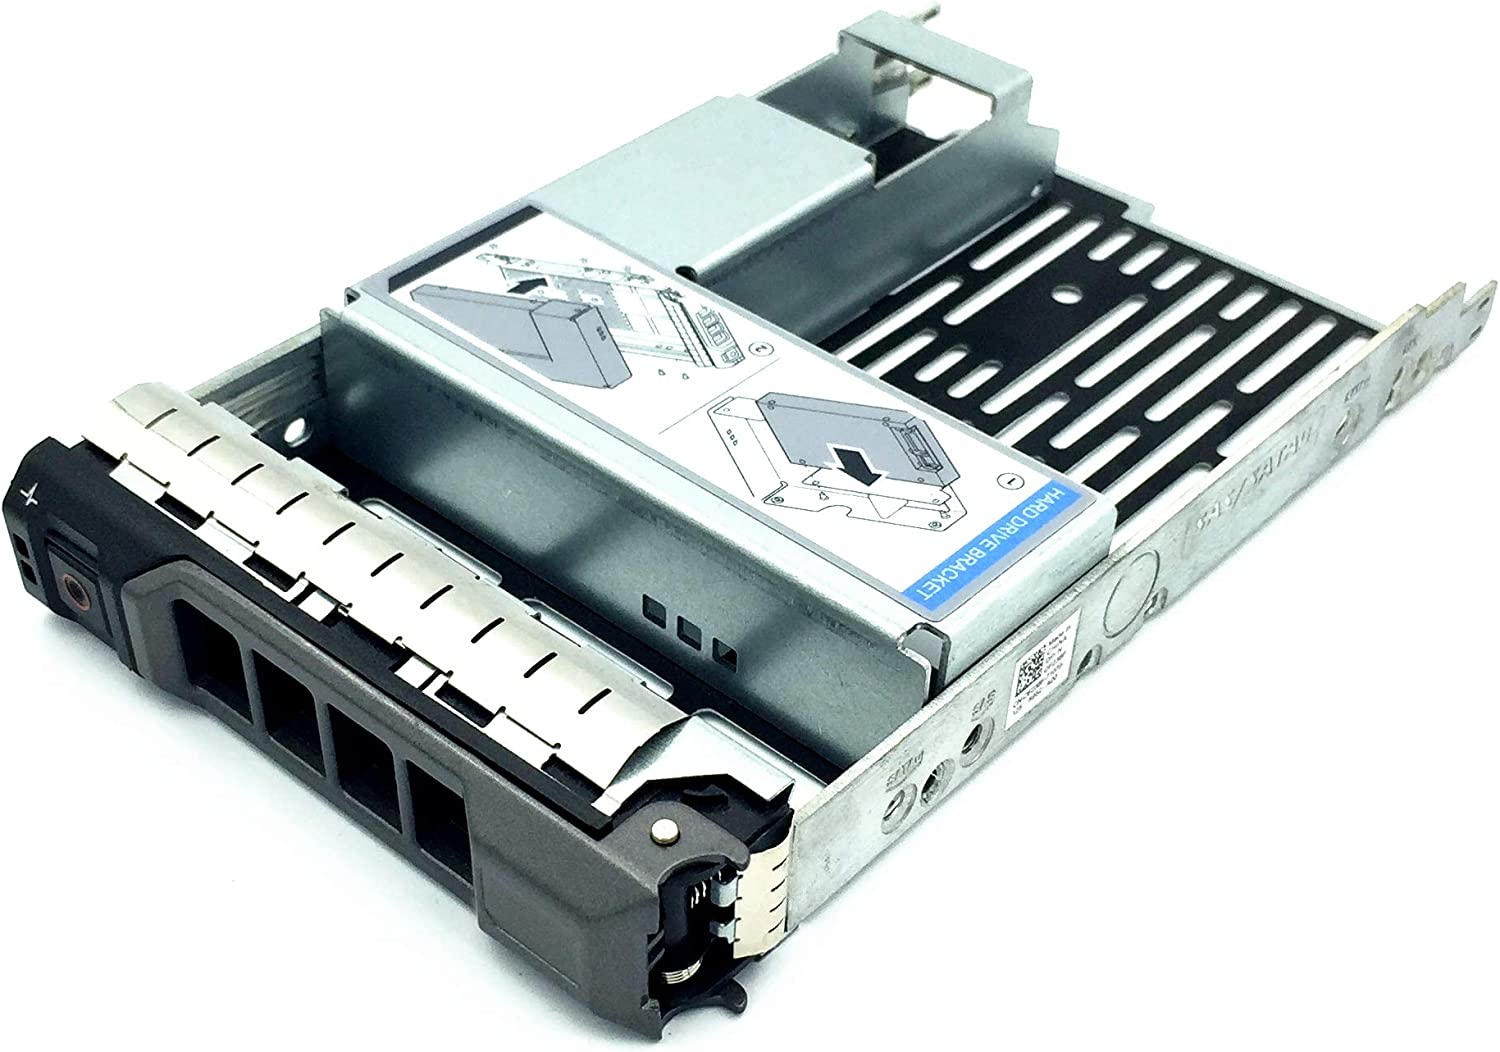 """3.5"""" F238F SAS/SATA Hard Drive Tray Caddy with 2.5"""" HDD Adapter SSD SAS SATA Bracket for Poweredge R320, R420, R720, T320, T420, T620 Servers with Screws"""